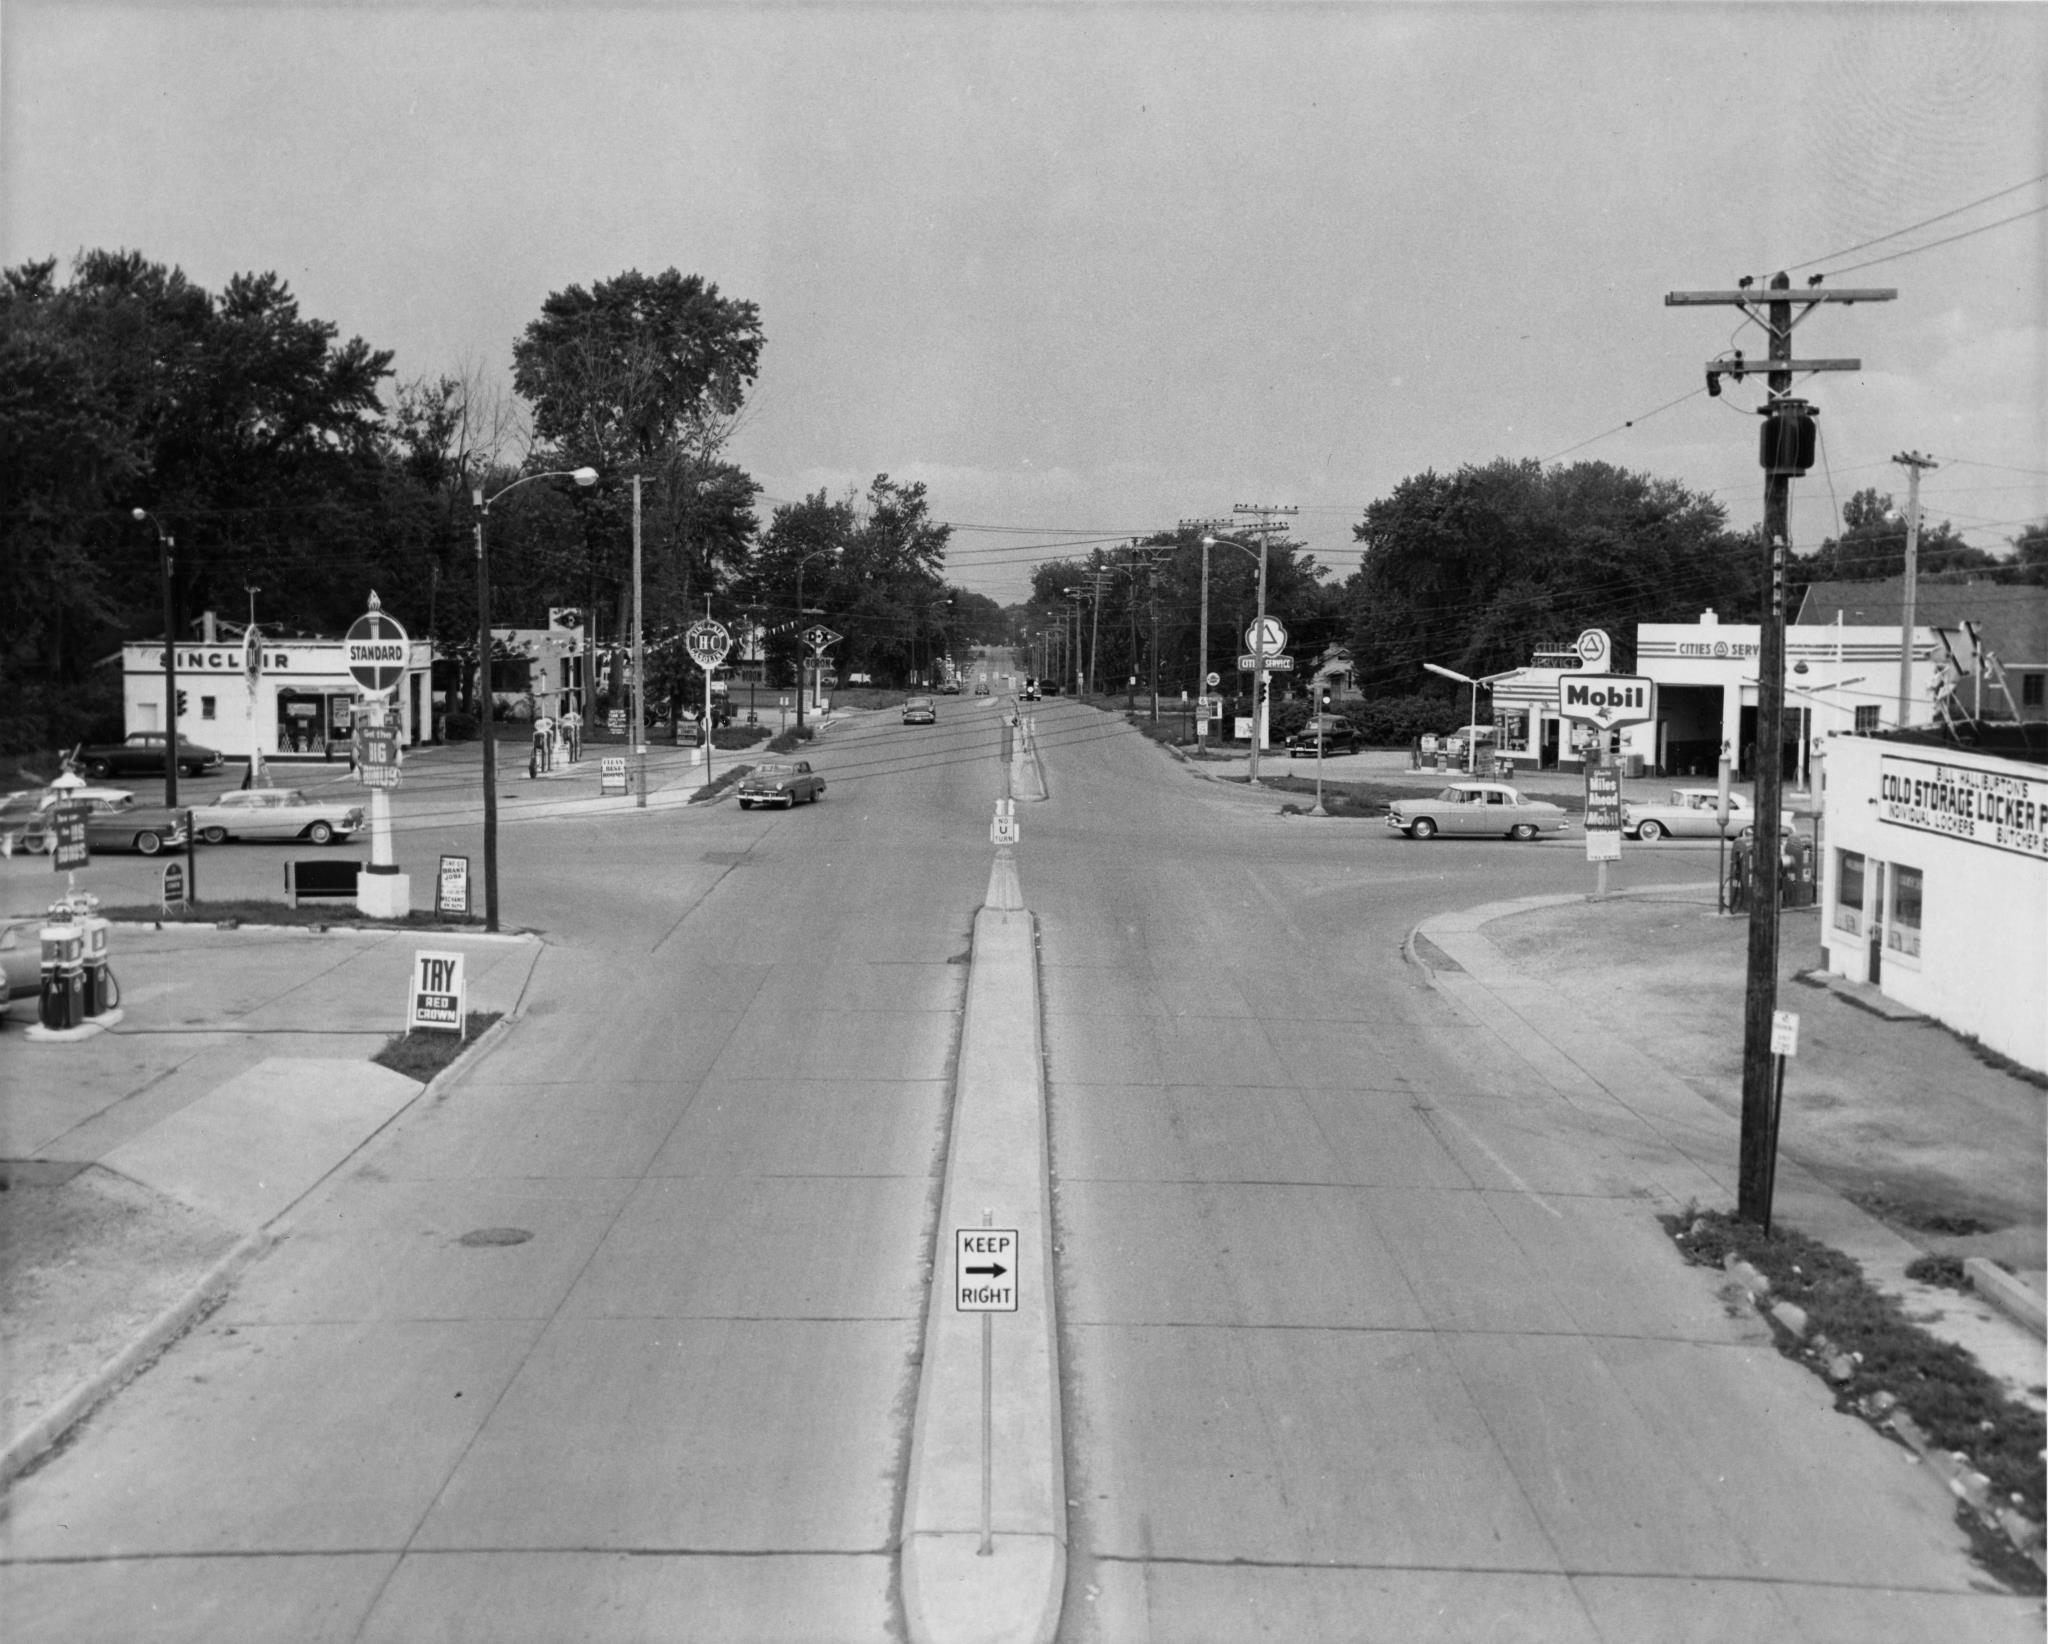 Merle Hay Rd and Hickman, 1950s. As city growth moved outward towards these areas, Downtown vibrancy declined. (Photo courtesy of Michael Wieskamp)